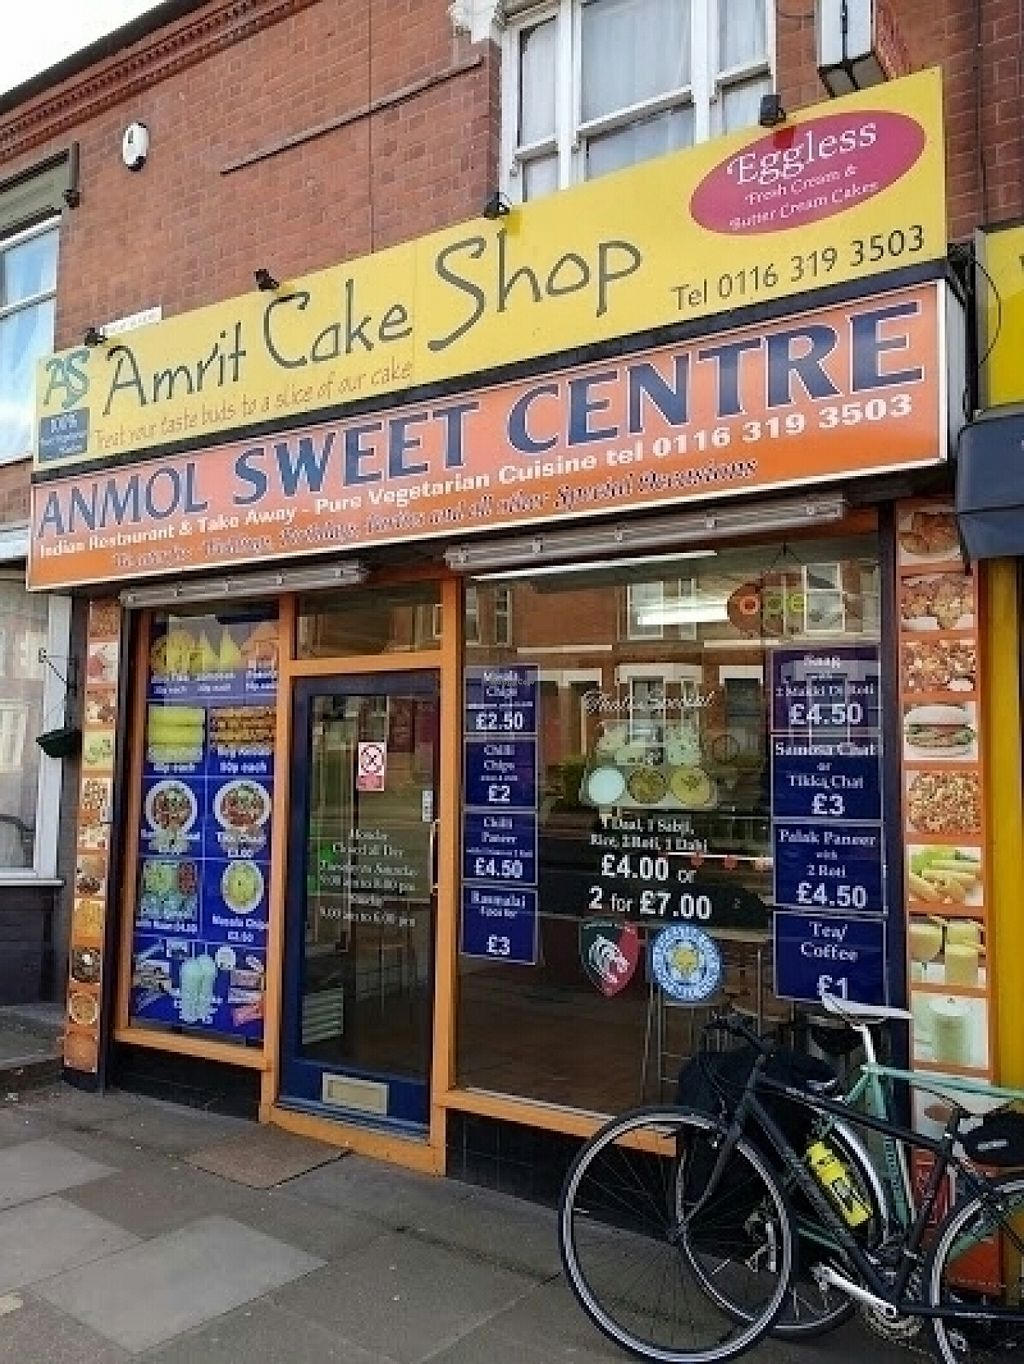 """Photo of Anmol Sweet Centre  by <a href=""""/members/profile/Meaks"""">Meaks</a> <br/>Anmol Sweet Centre <br/> July 31, 2016  - <a href='/contact/abuse/image/63613/163763'>Report</a>"""